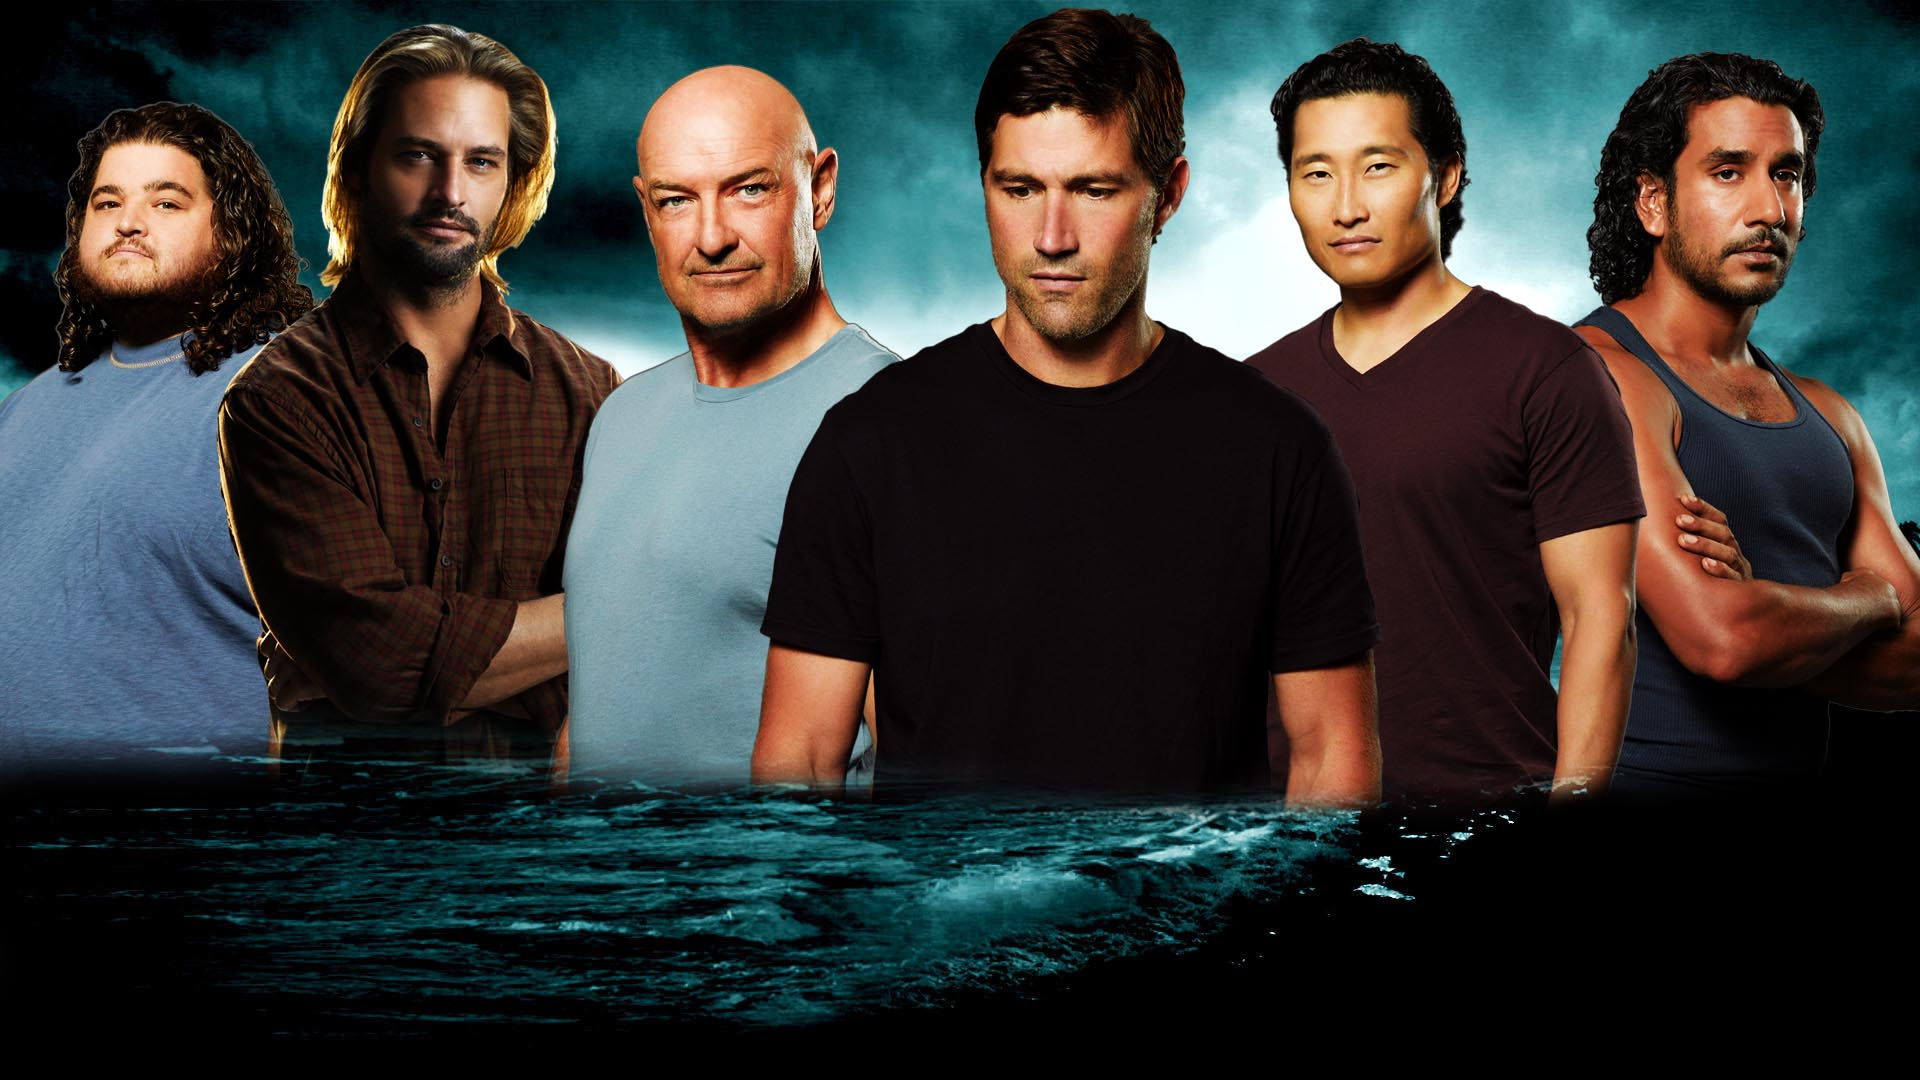 lost images cast of lost hd wallpaper and background photos 37561517